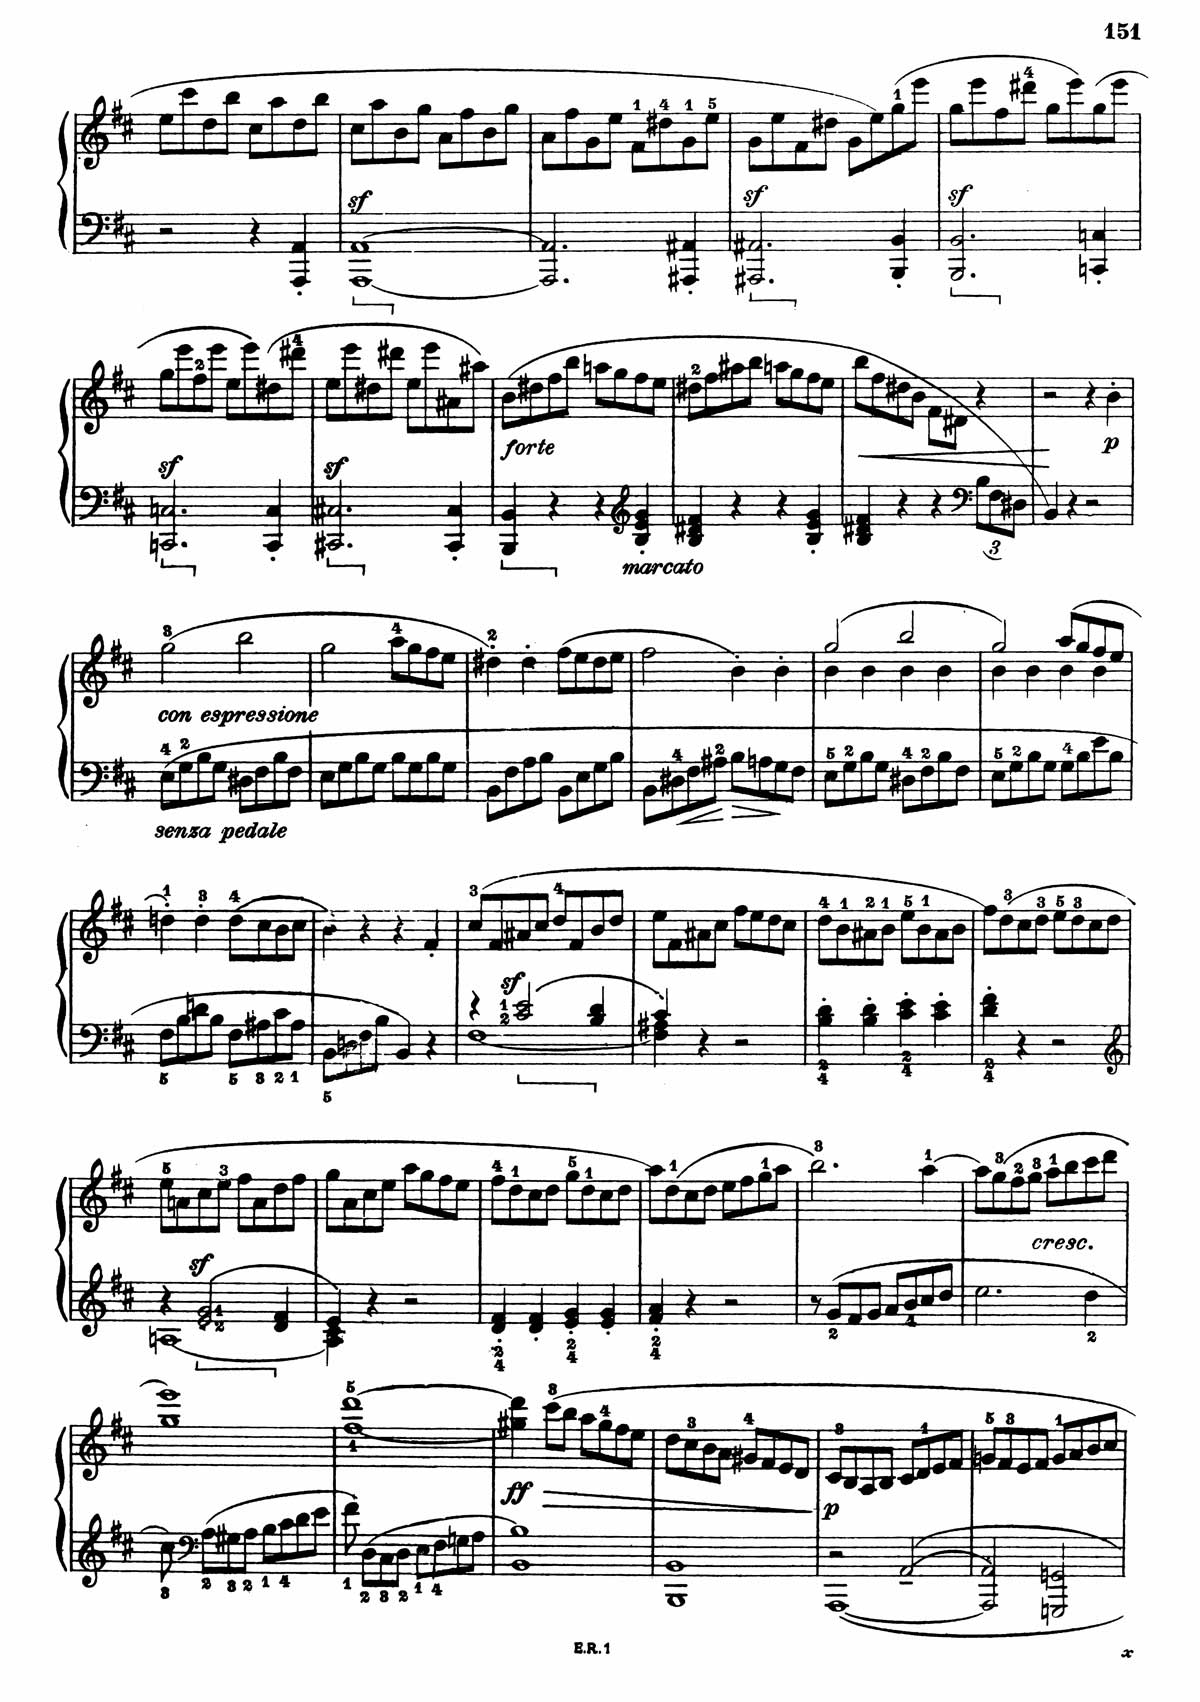 Beethoven Piano Sonata 7-7 sheet music